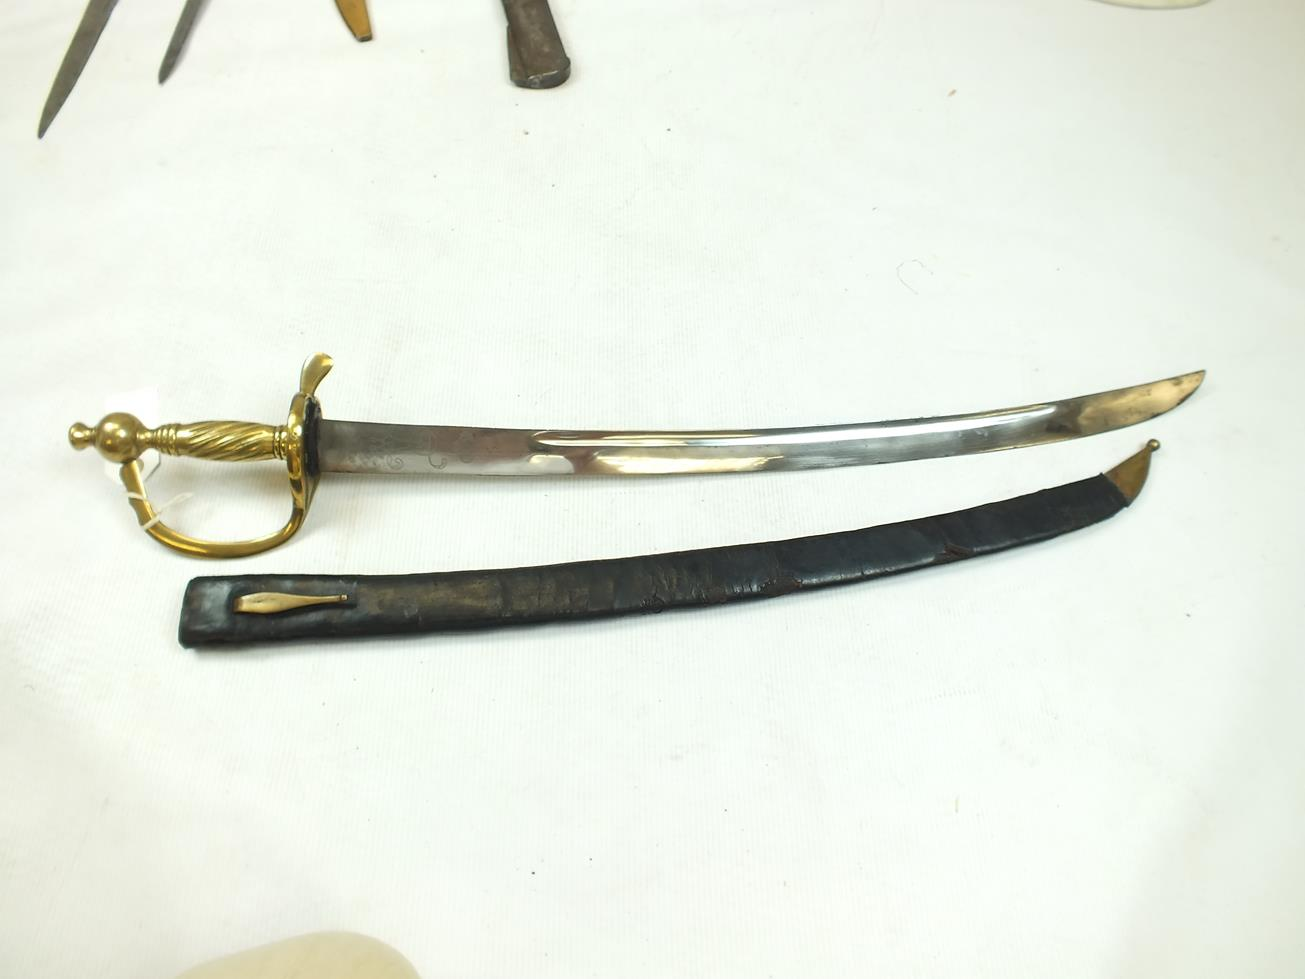 Lot 50 - A PRUSSIAN INFANTRY HANGER CIRCA 1750, 64cm curved fullered blade etched with the crowned Royal